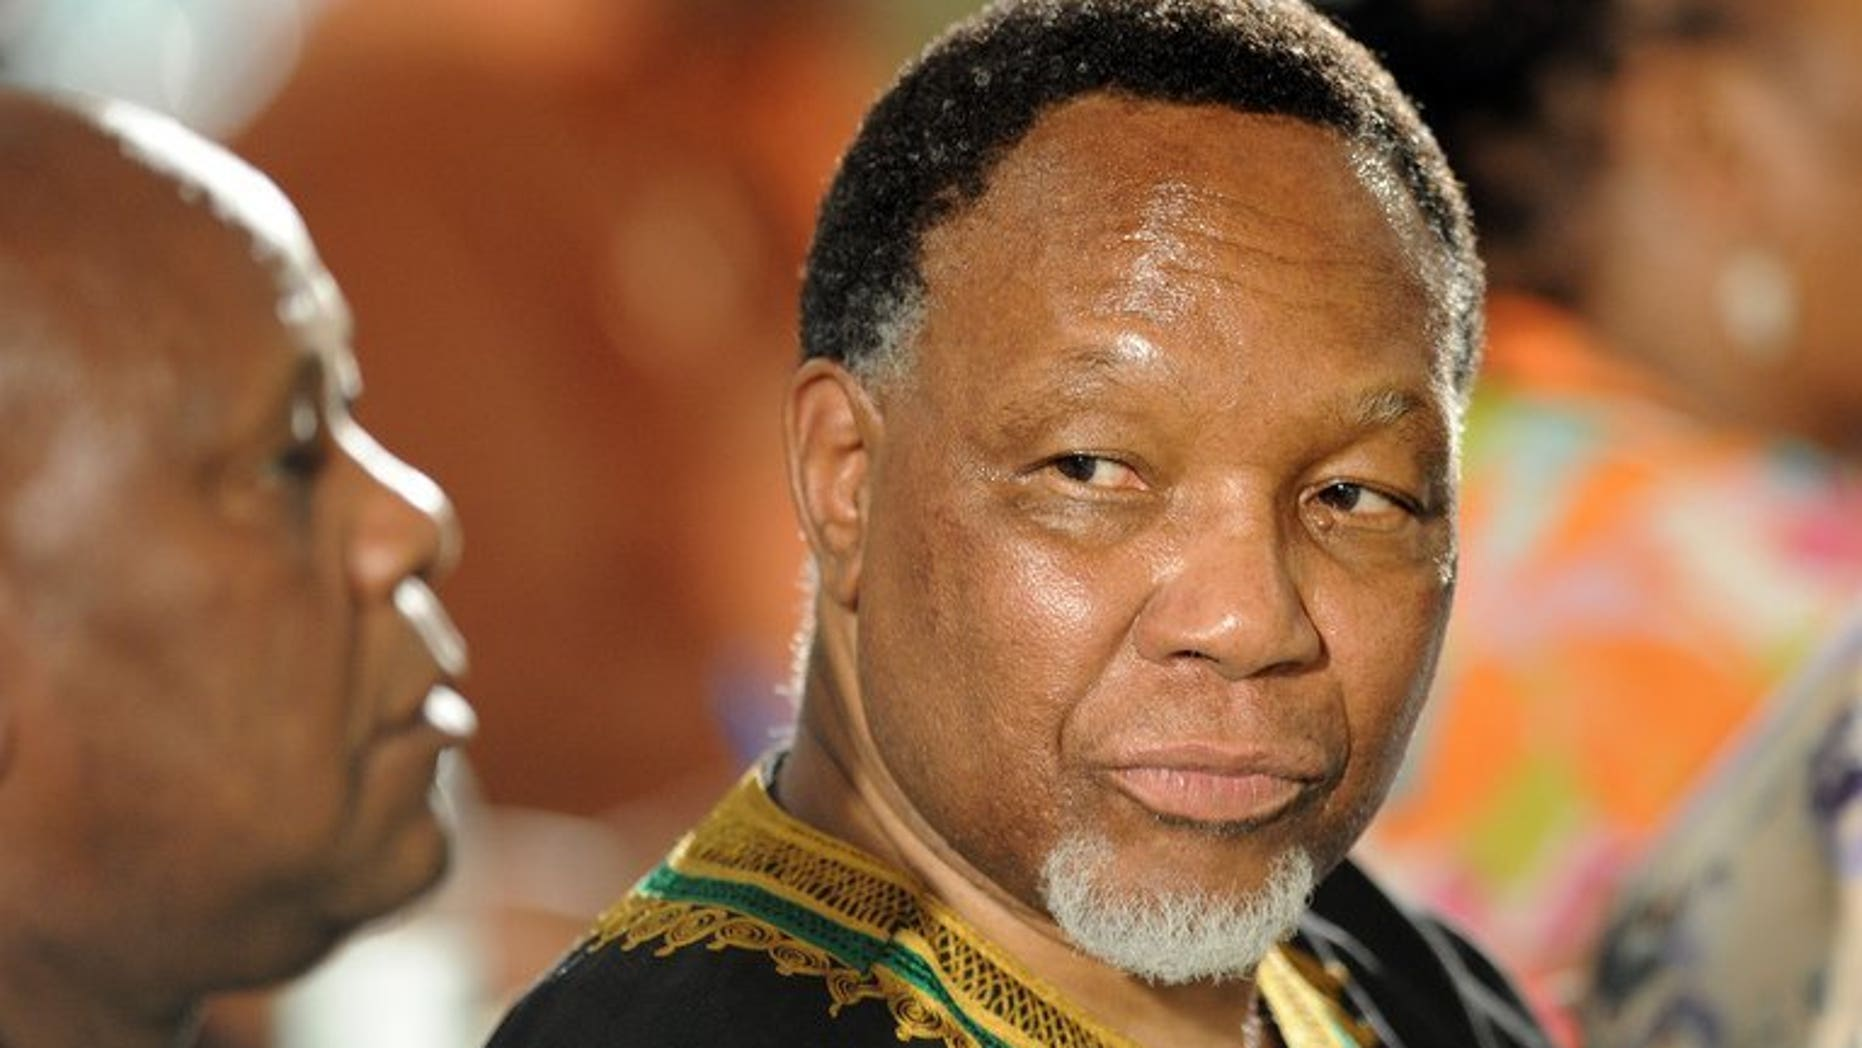 South African deputy president Kgalema Motlanthe attends the 53rd National Conference of the African National Congress (ANC) in Bloemfontein, December 18, 2012. Motlanthe has warned that his ruling ANC party risks losing power if it fails to remain relevant to the people, the Financial Times reported Monday.